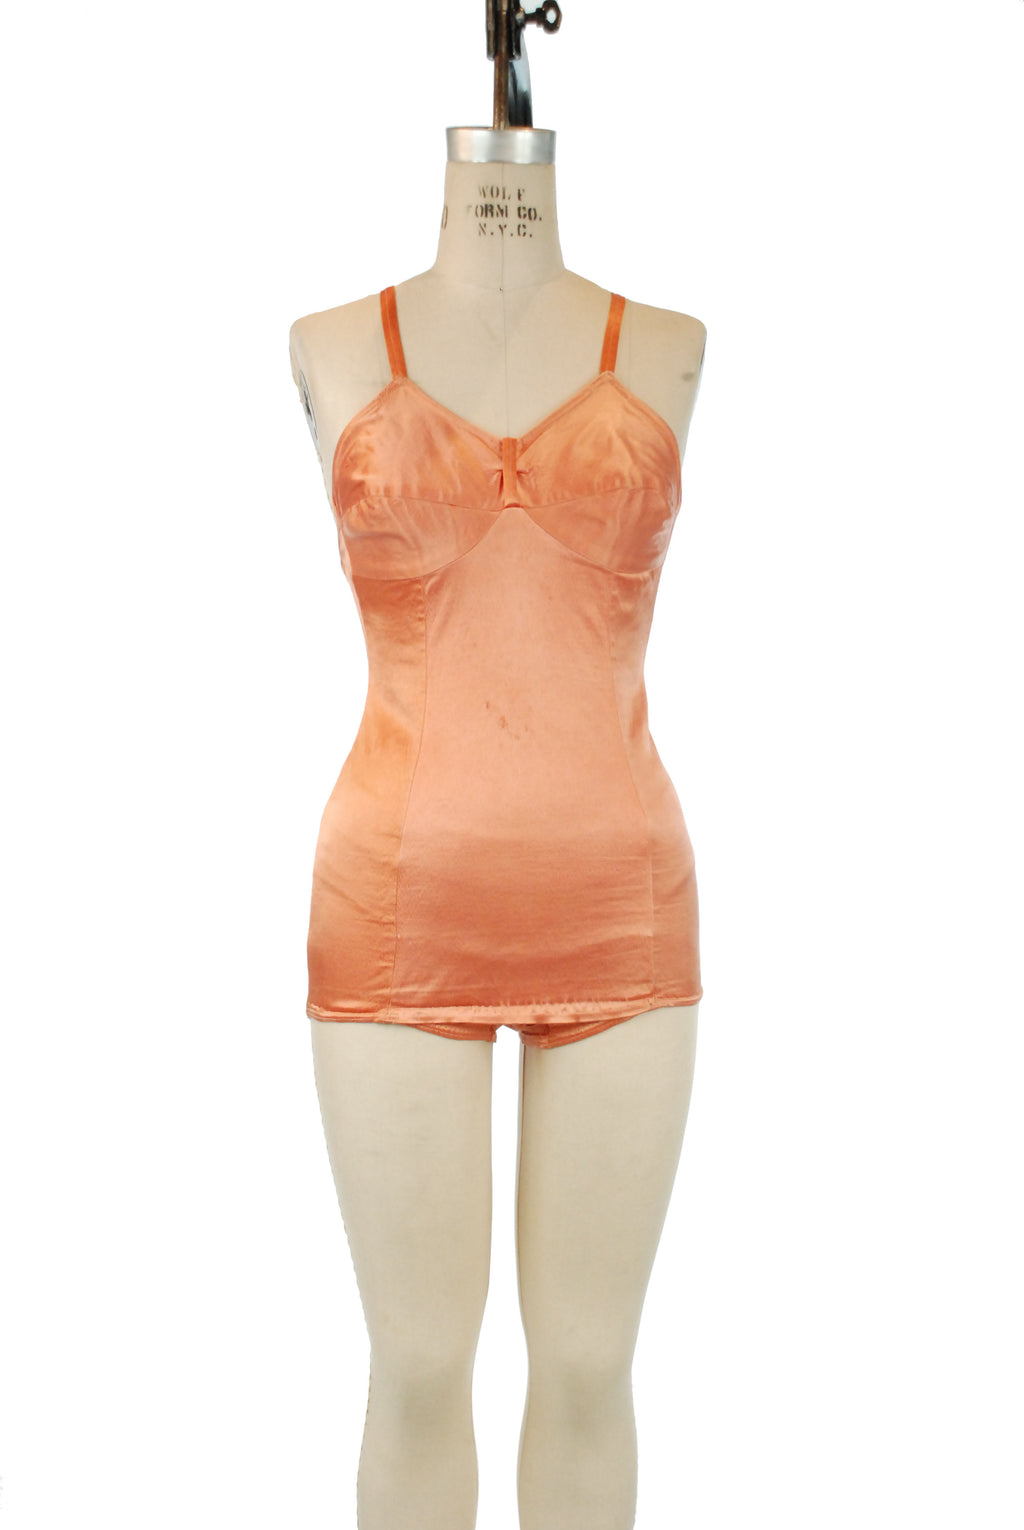 Stunning 1930s Satin Lastex Bathing Suit in Rich Apricot